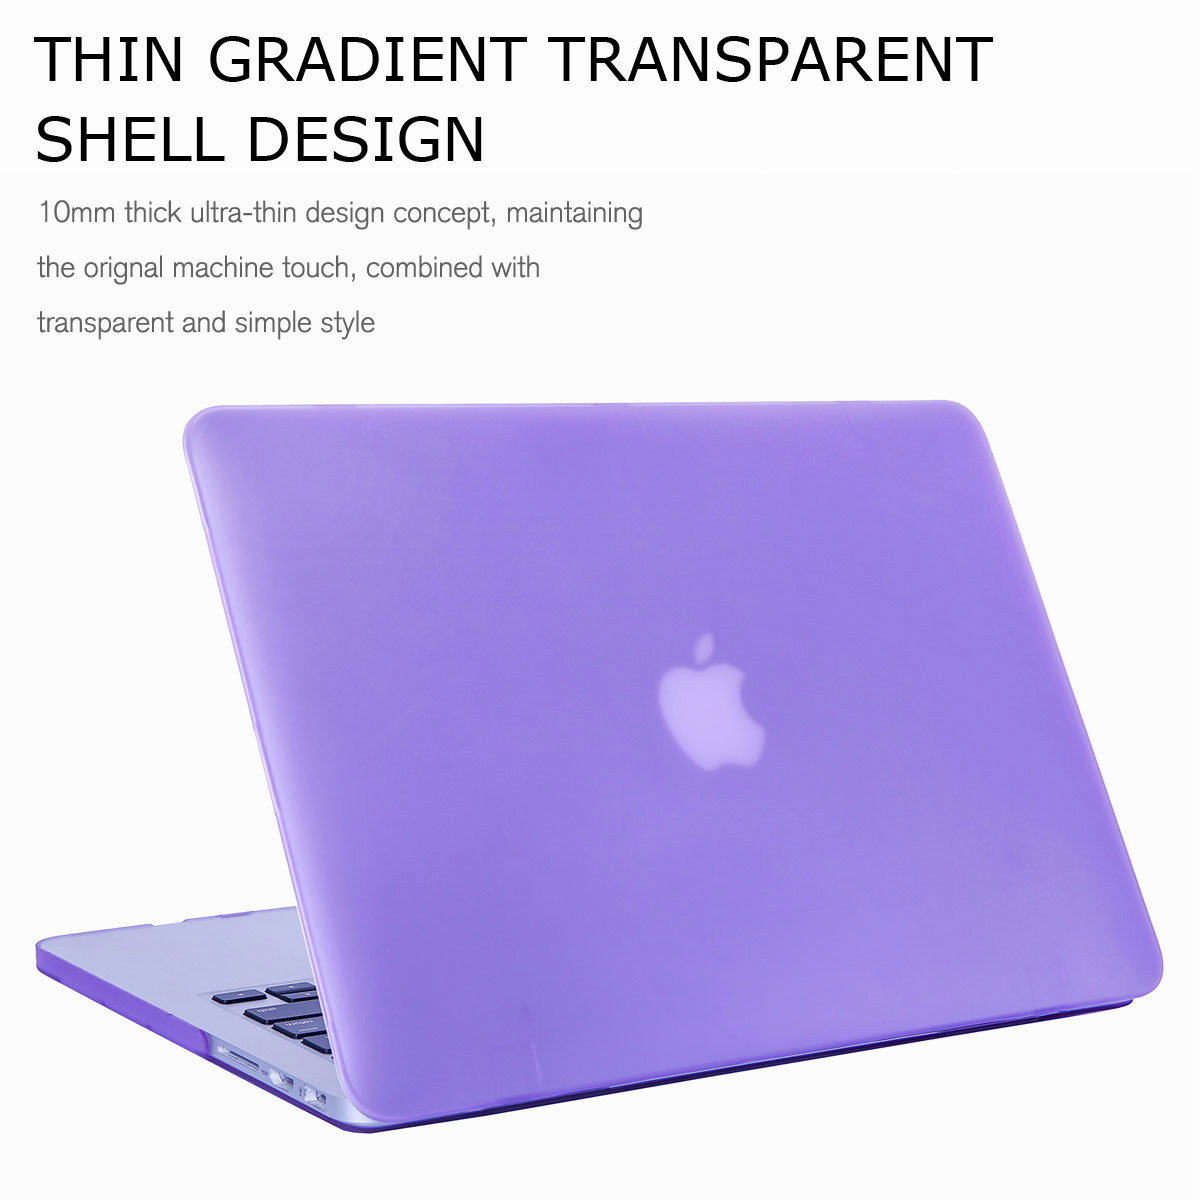 Matte-Rubberized-Hard-Case-Cover-Shell-For-Macbook-Pro-Retina-12-039-039-13-039-039-15-Inch thumbnail 69